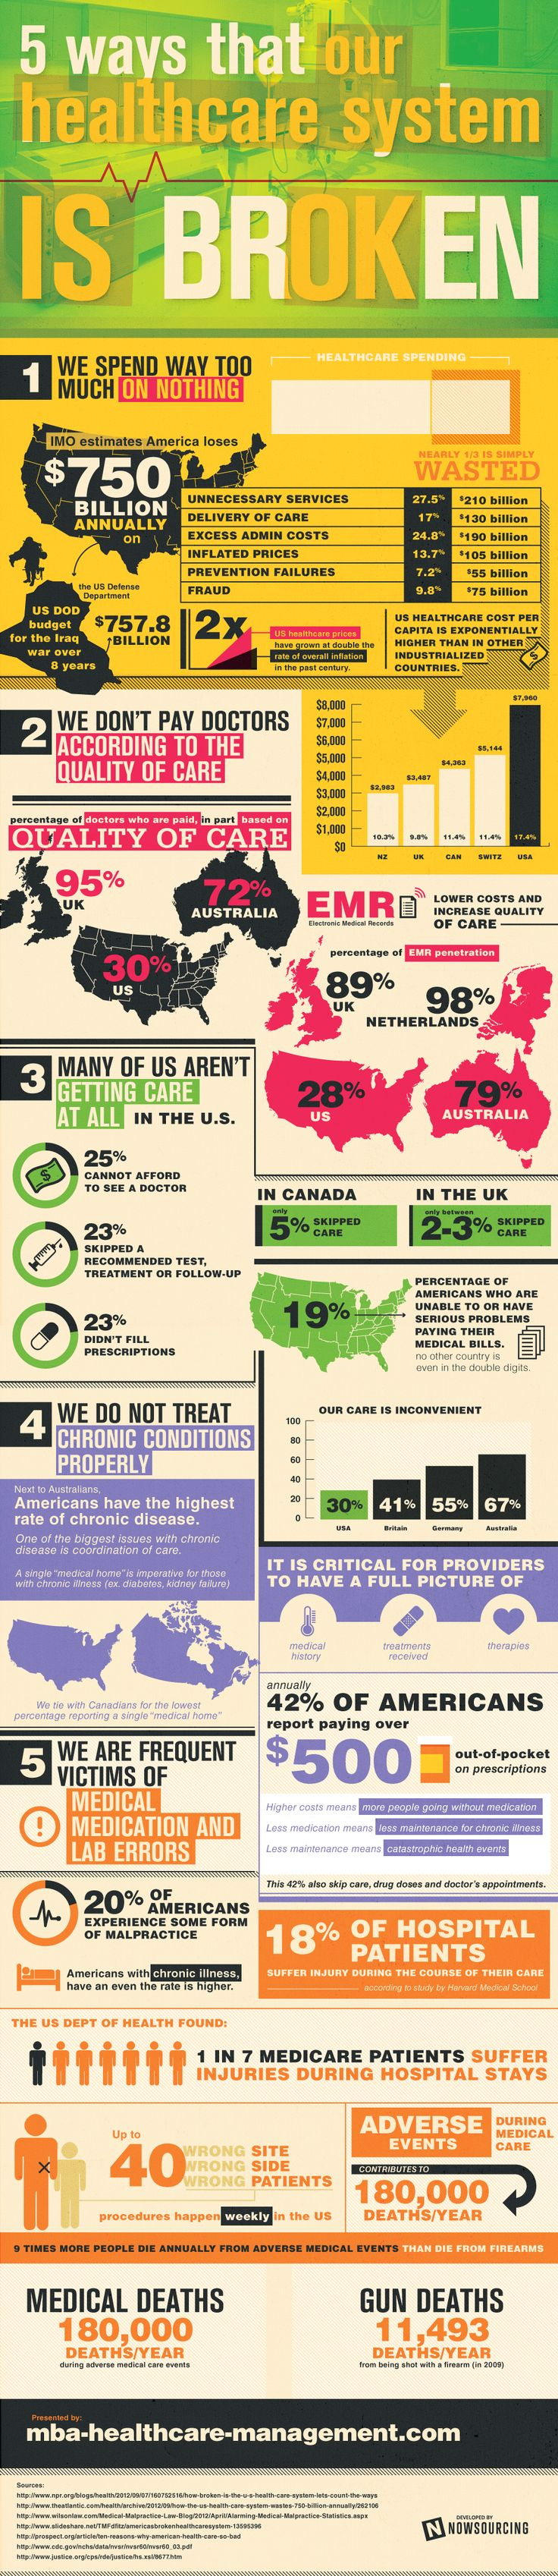 5 Ways The US Healthcare System Is Broken #Infographic #healthcare